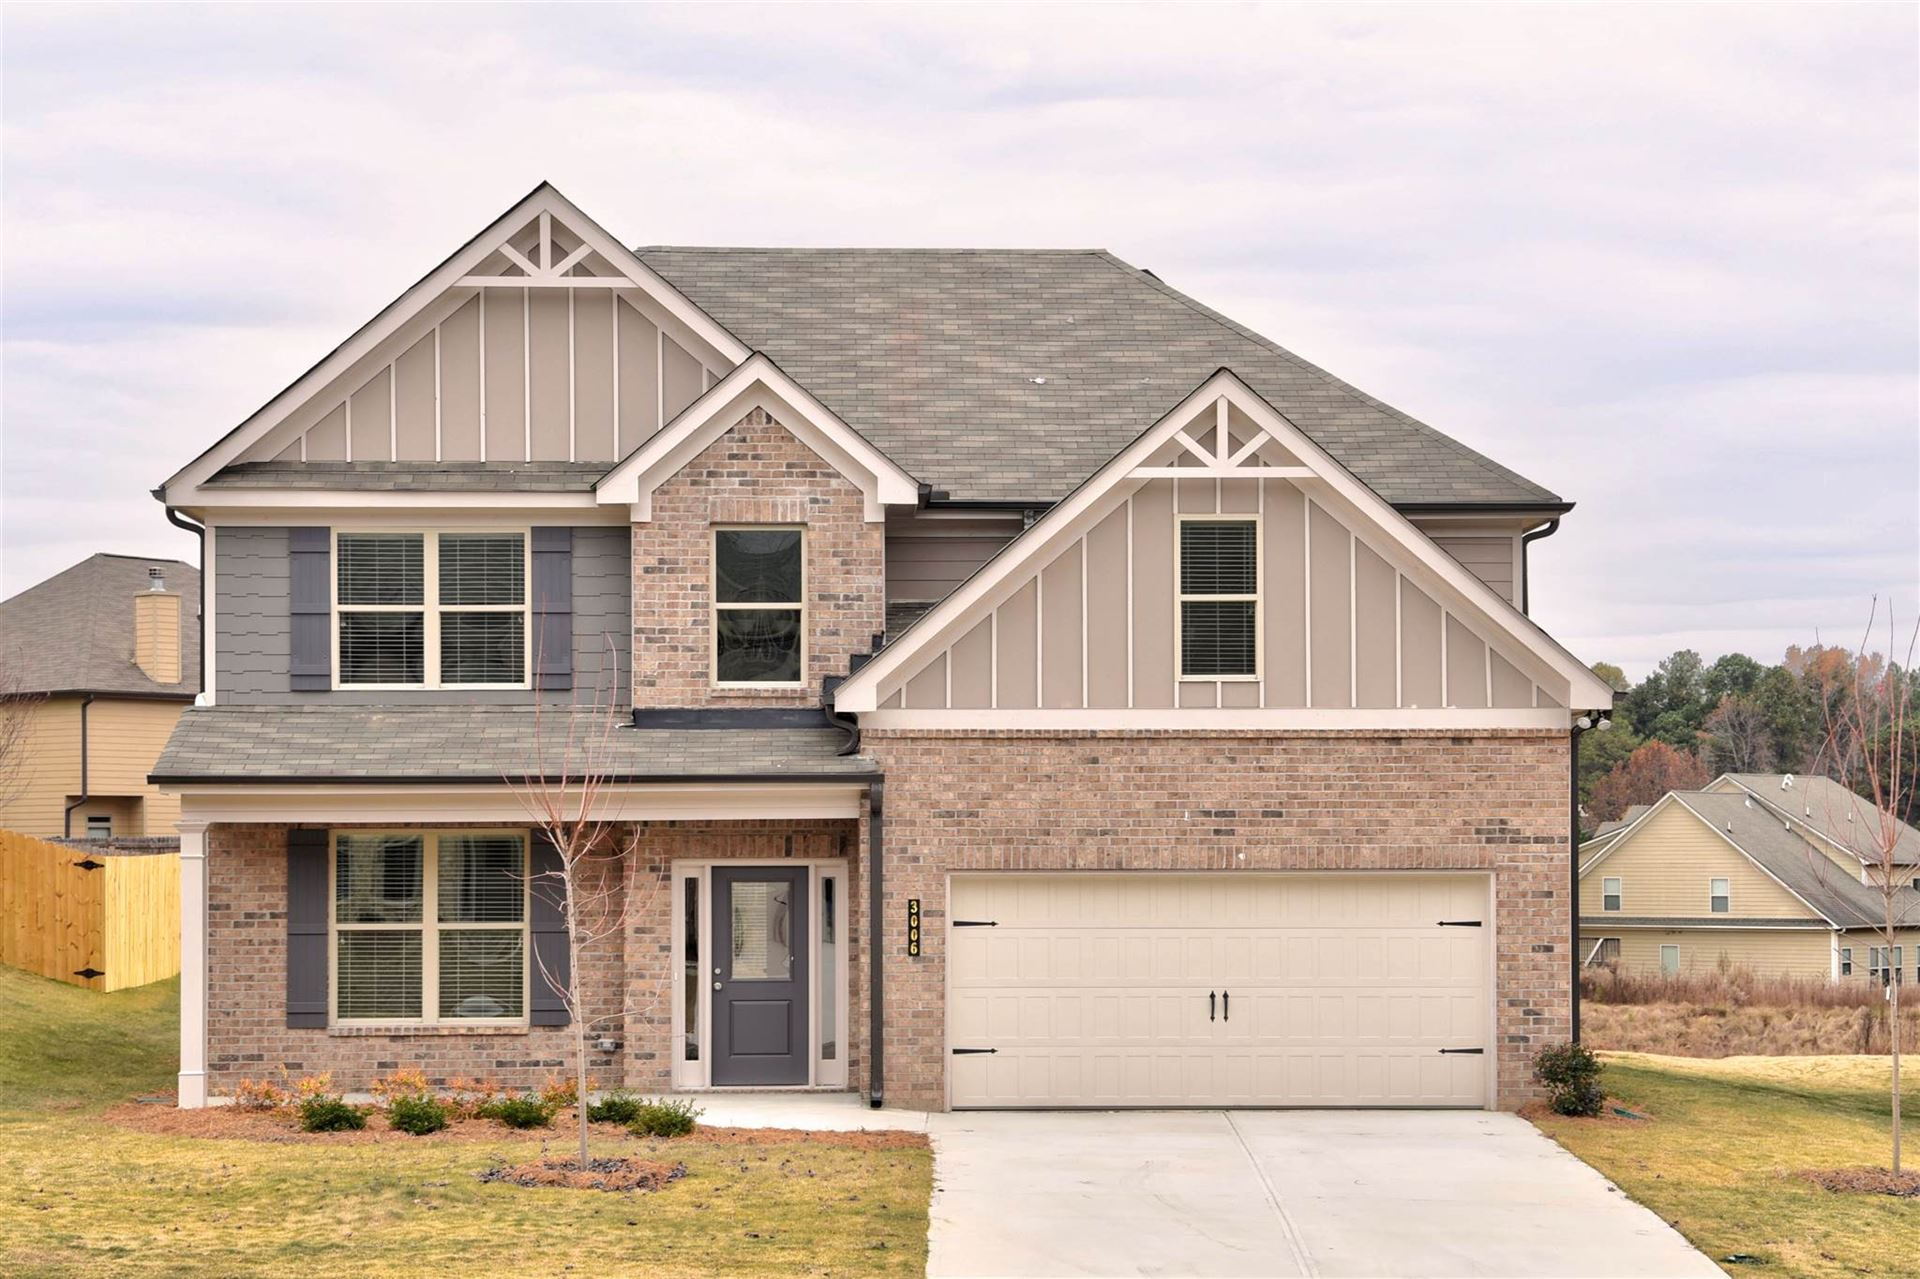 6048 Fair Winds Cv, Flowery Branch, GA 30542 - #: 8788293